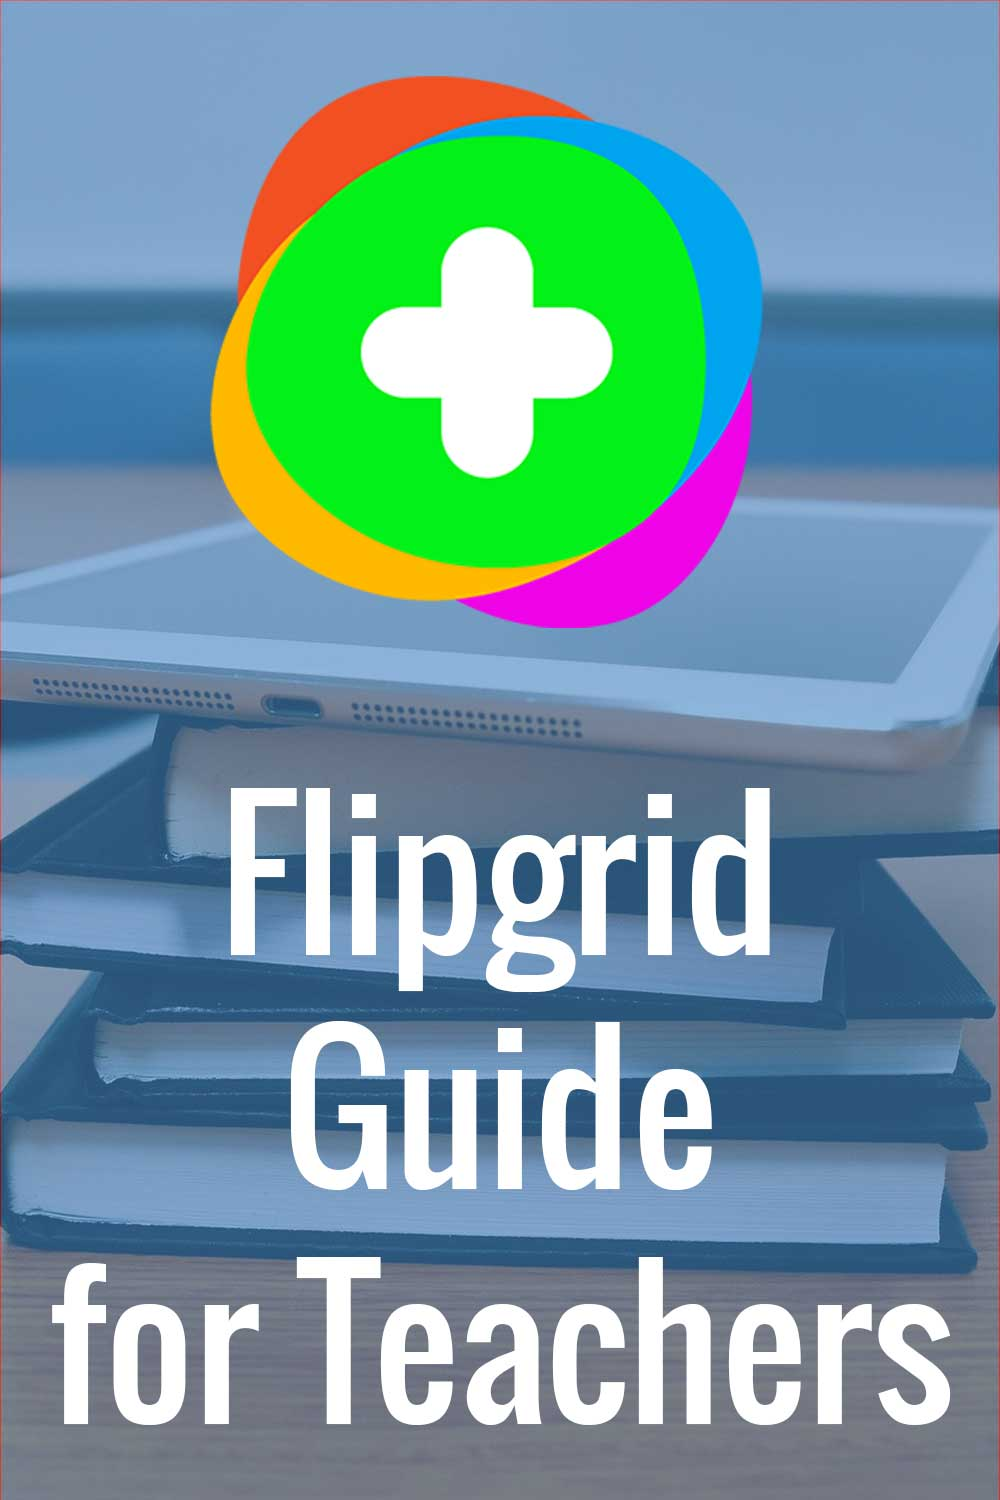 Flipgrid Guide for Teachers